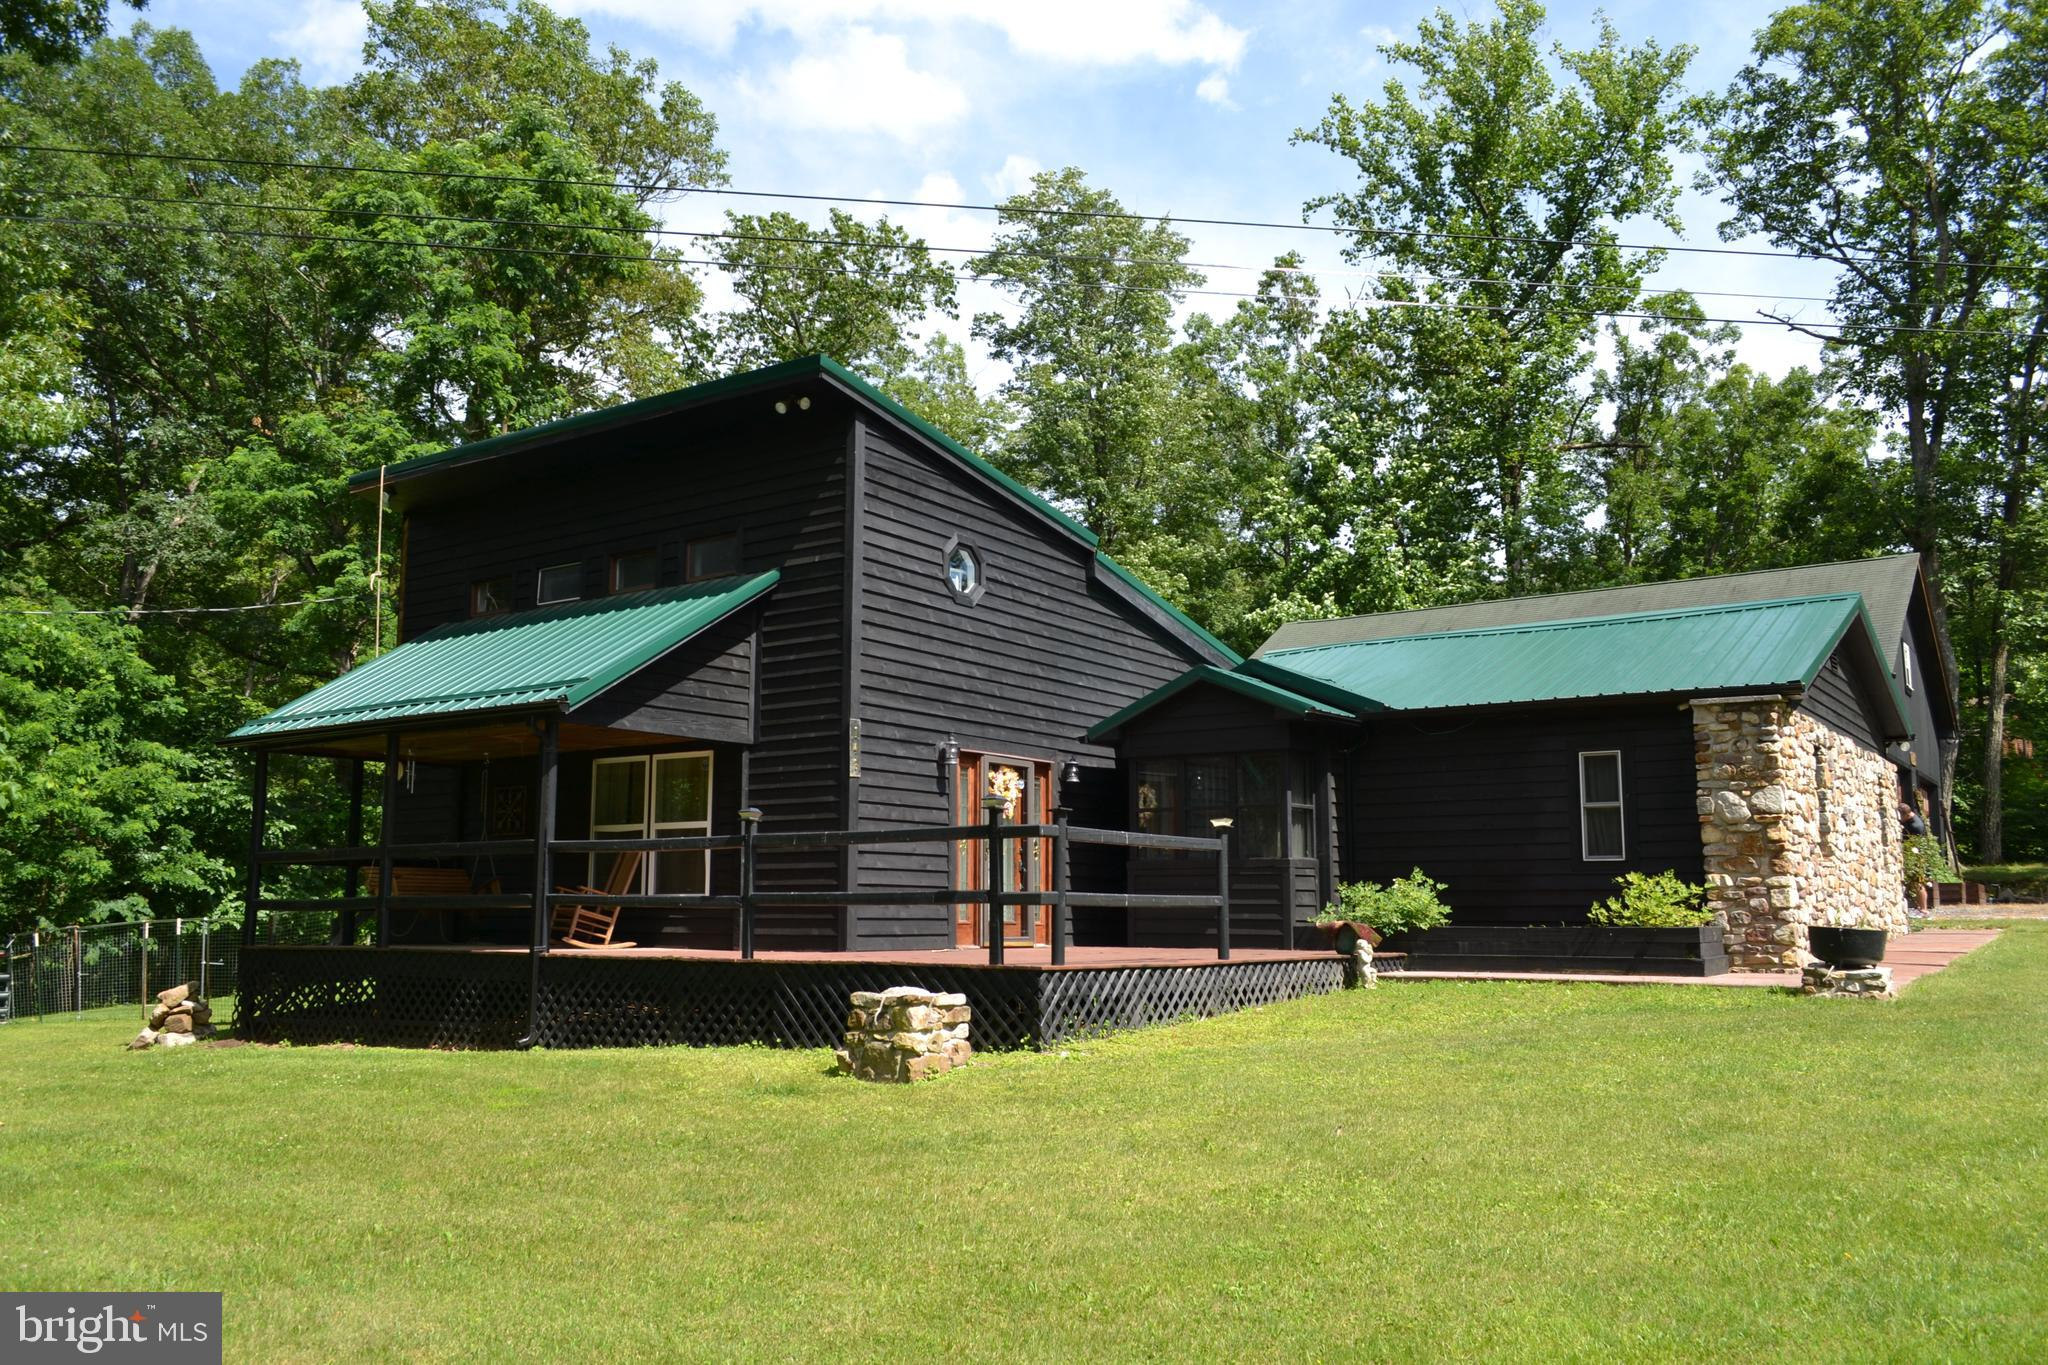 149 GREENERY DRIVE, WARDENSVILLE, WV 26851